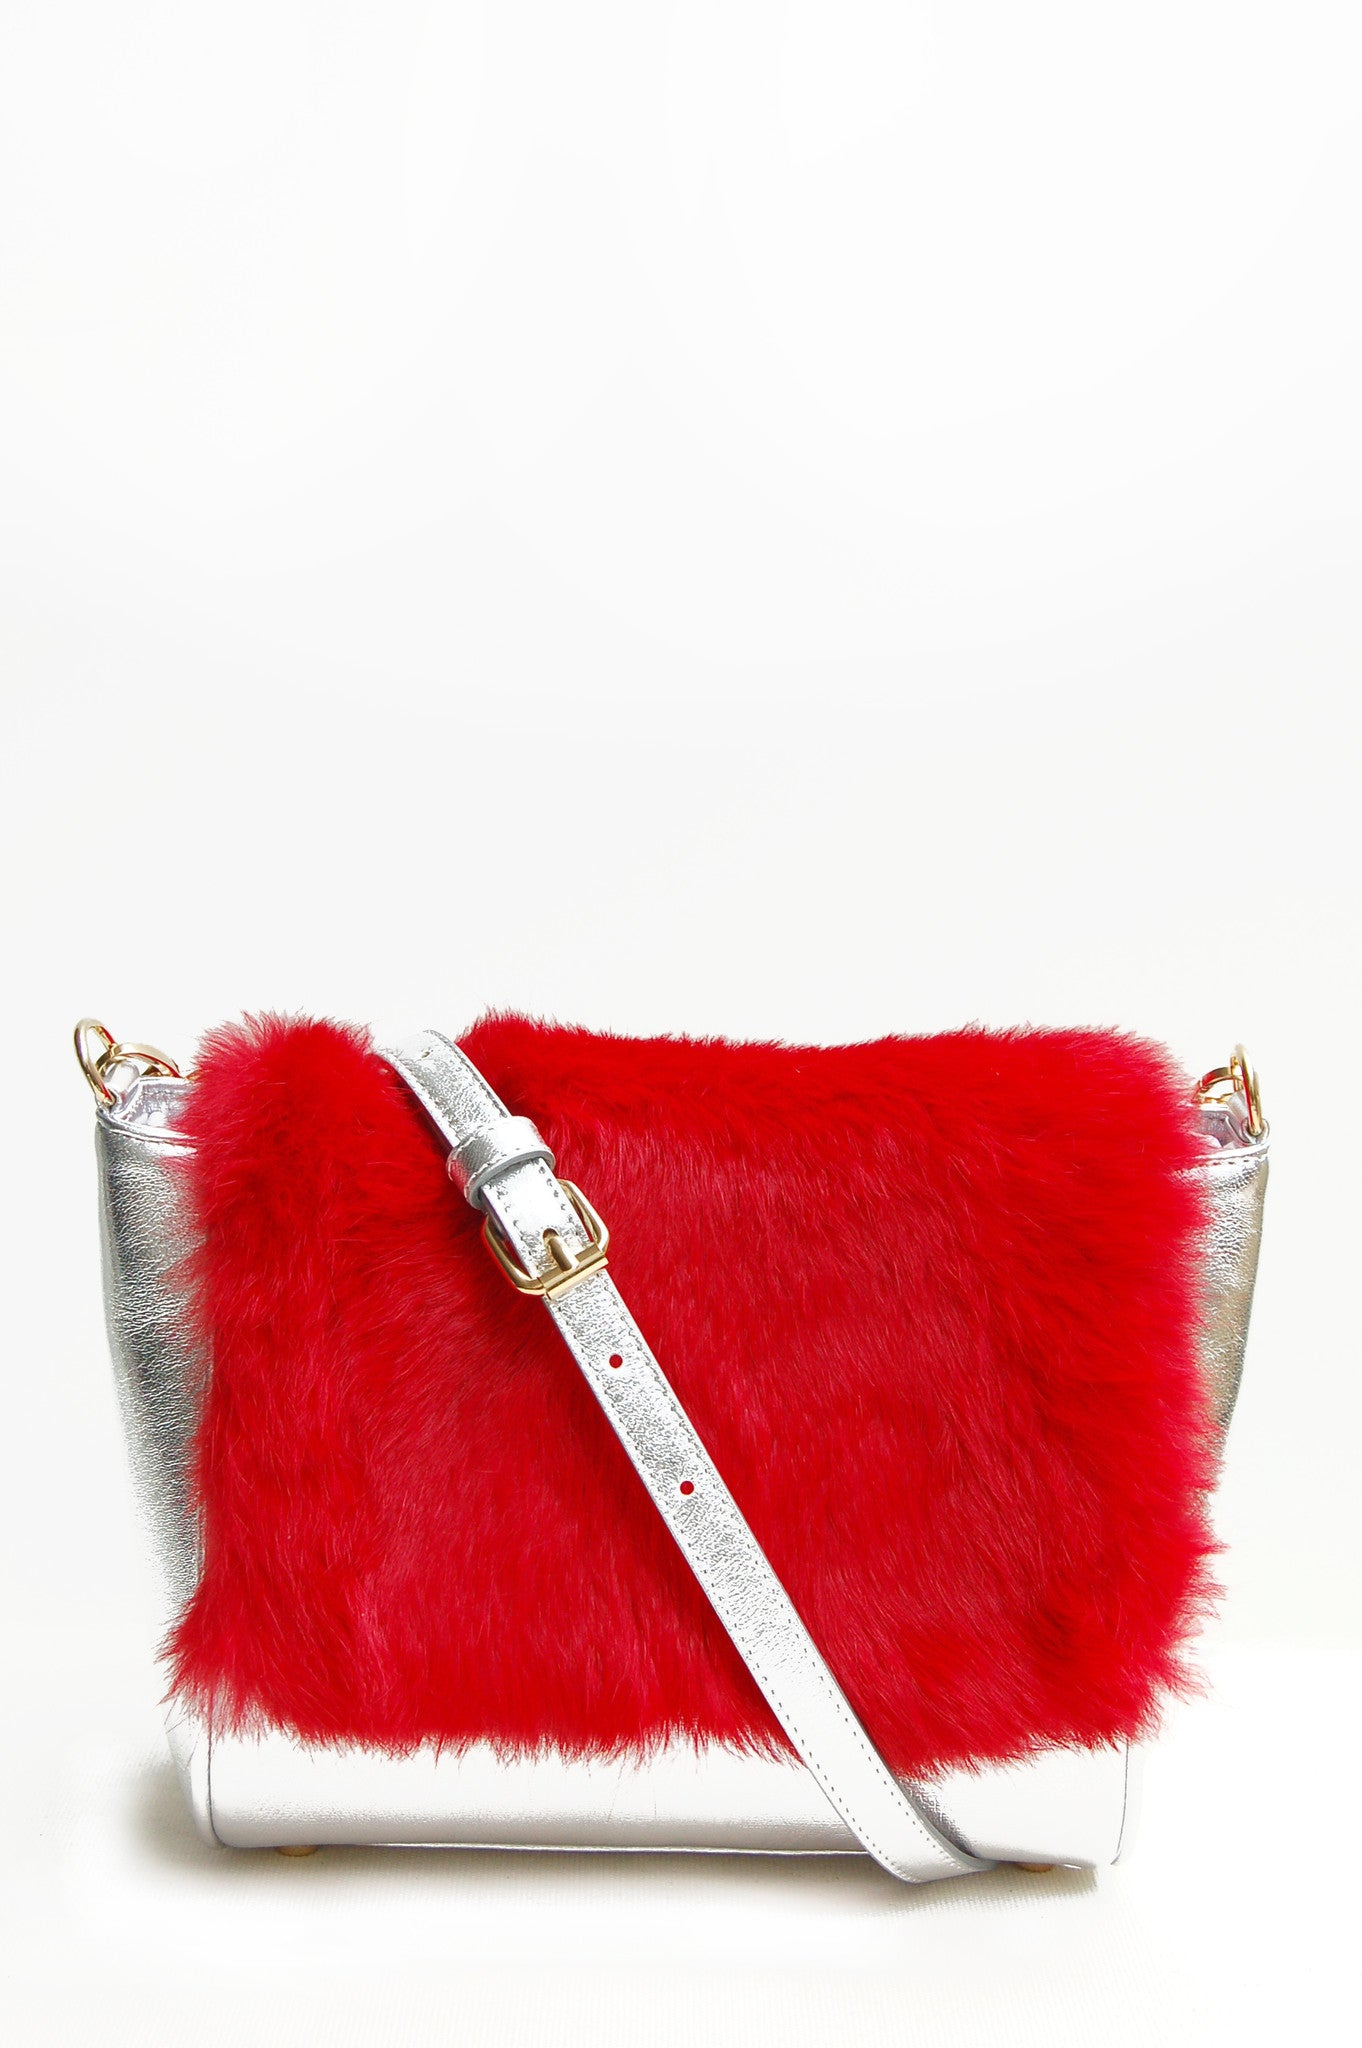 Wendee Ou: Sienna flapover handbag silver & red | Bags > Handbags,Bags,Bags > Shoulder Bags -  Hiphunters Shop